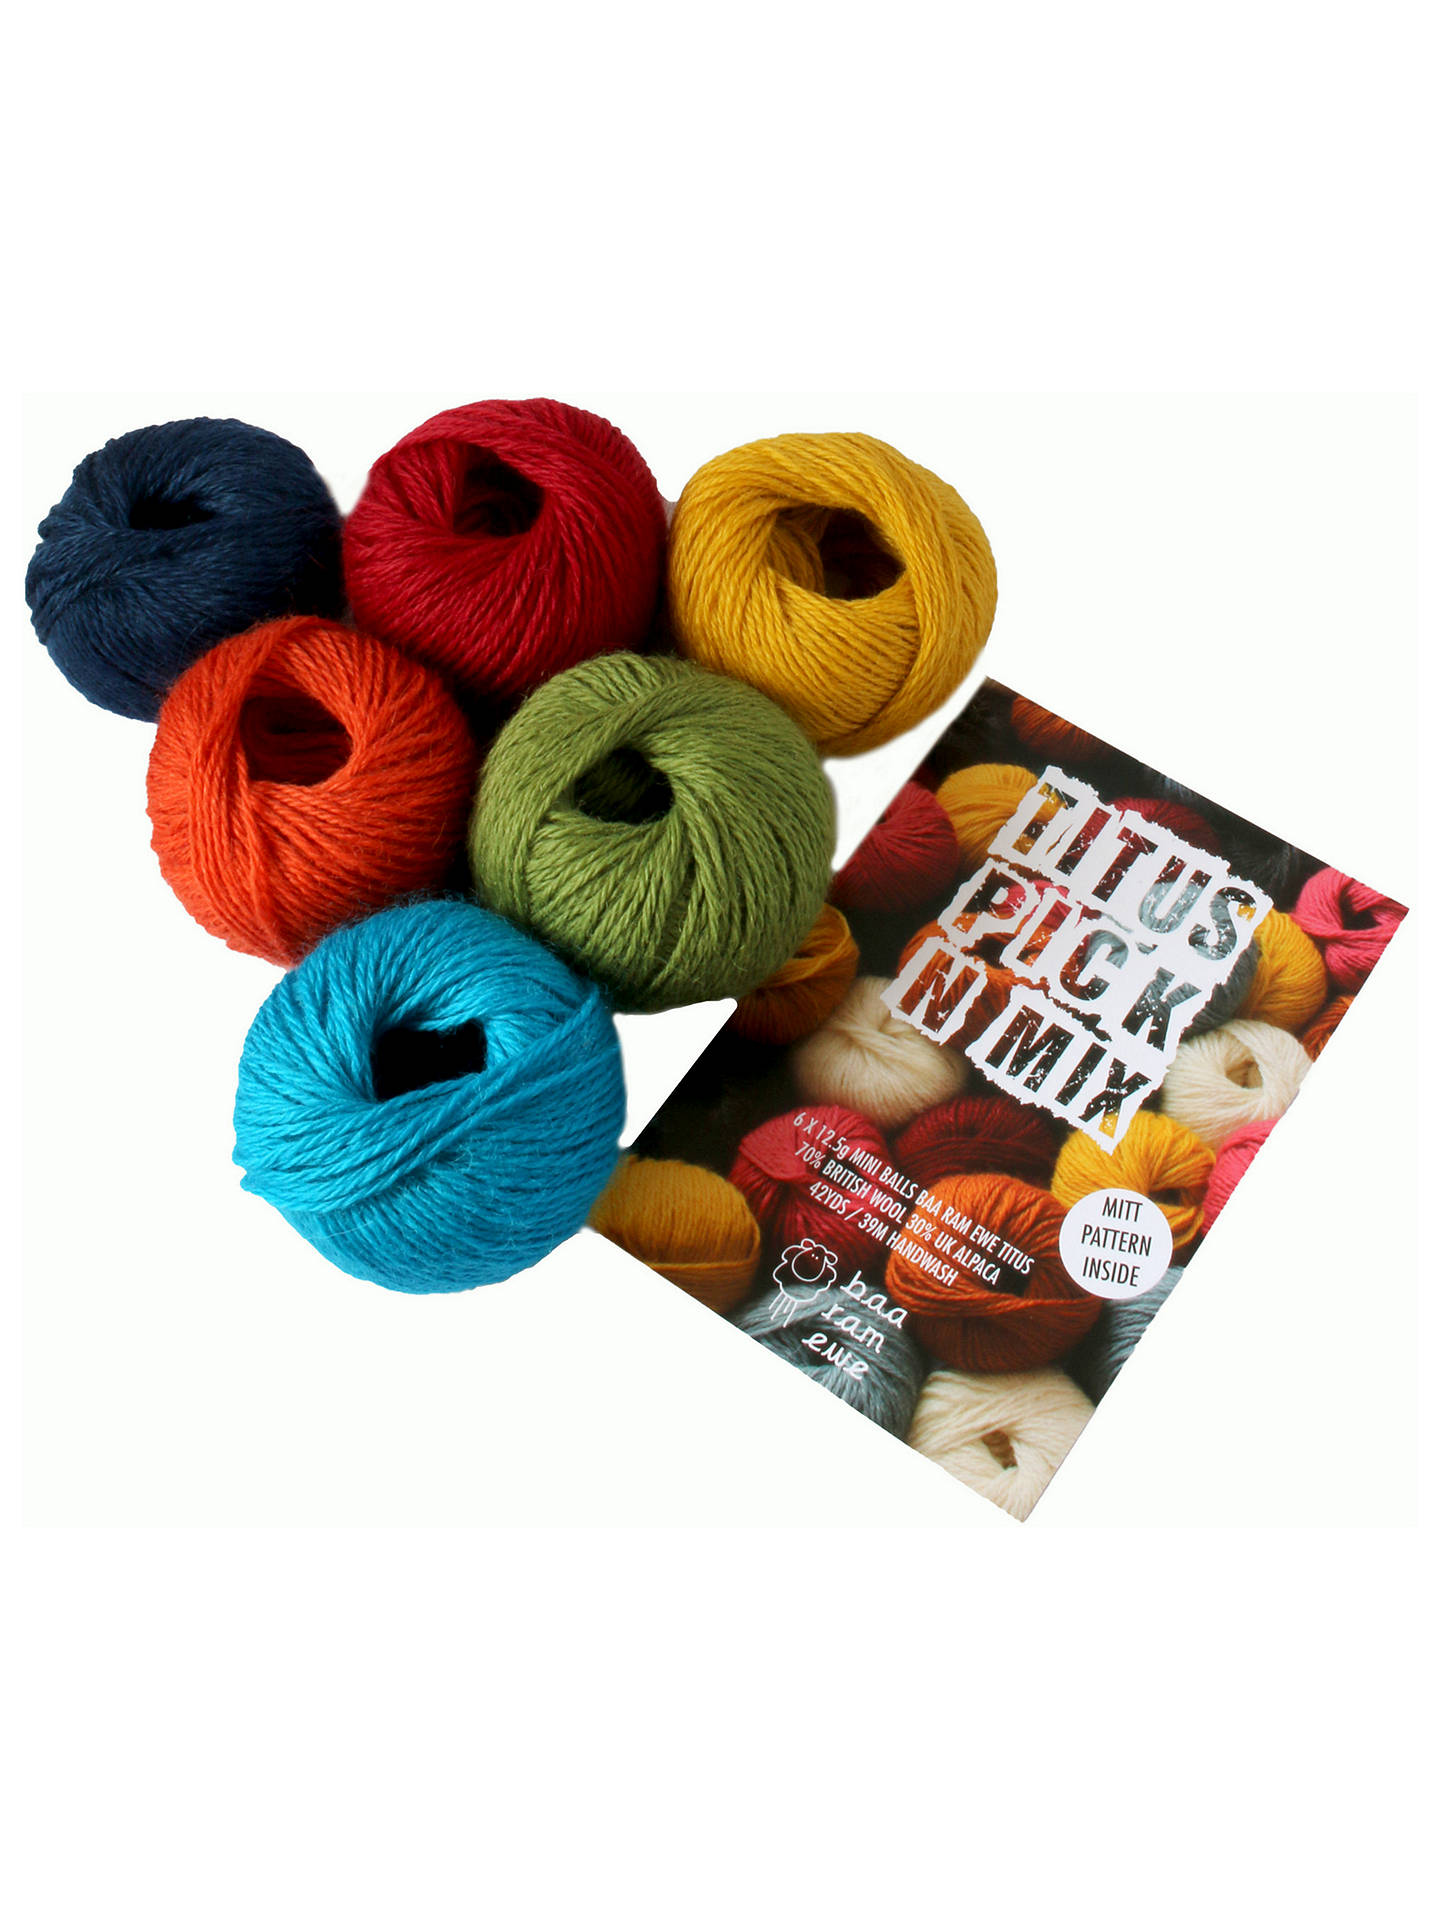 BuyBaa Ram Ewe Titus Pick N Mix Yarn, Pack of 6, Gobstopper Online at johnlewis.com